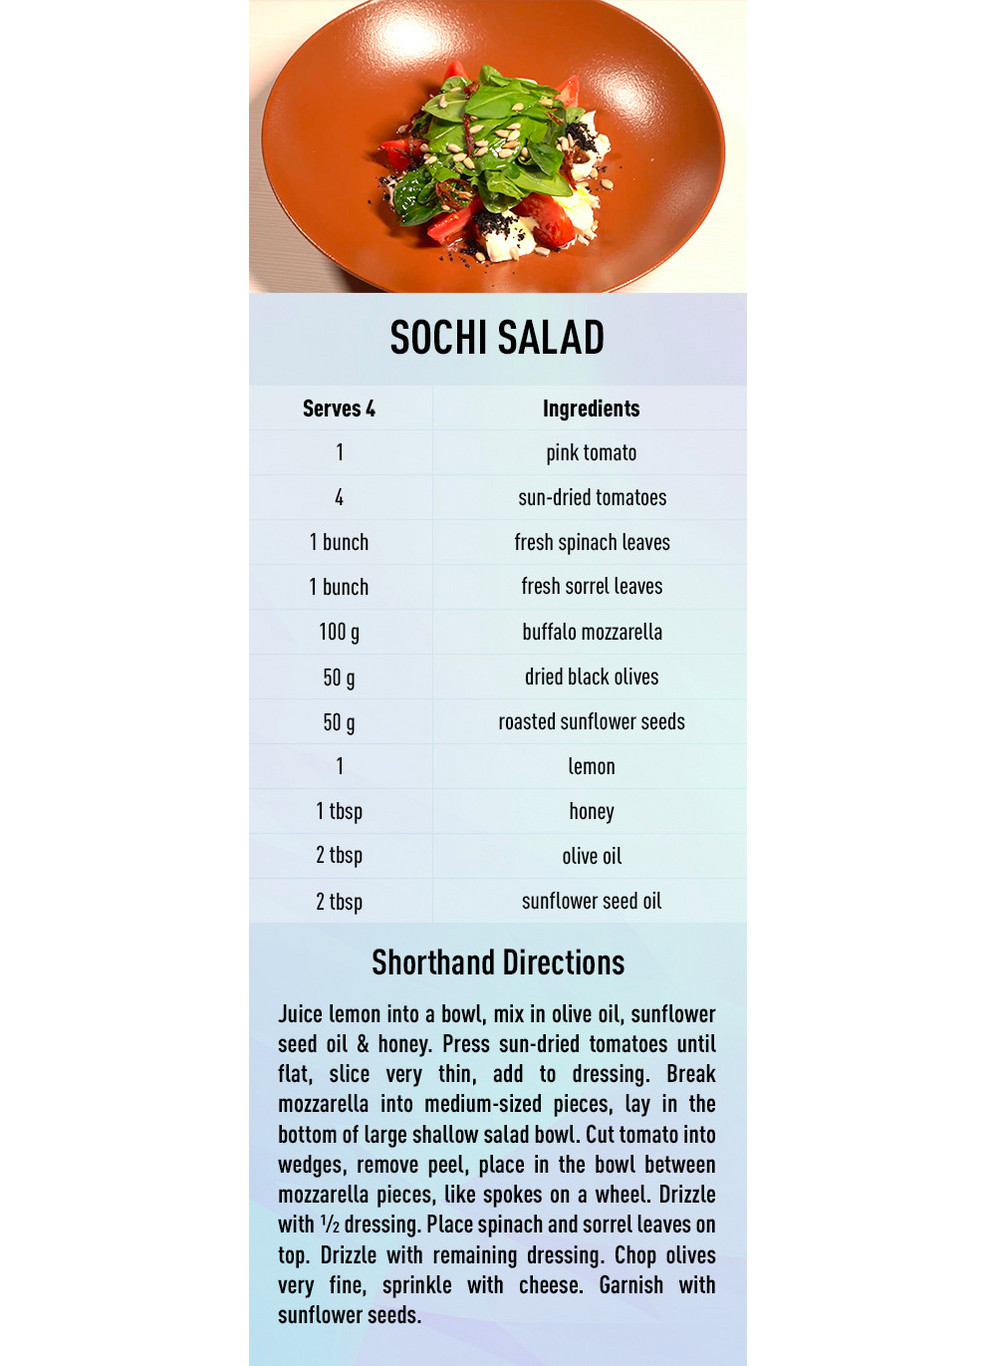 Sochi Salad recipe